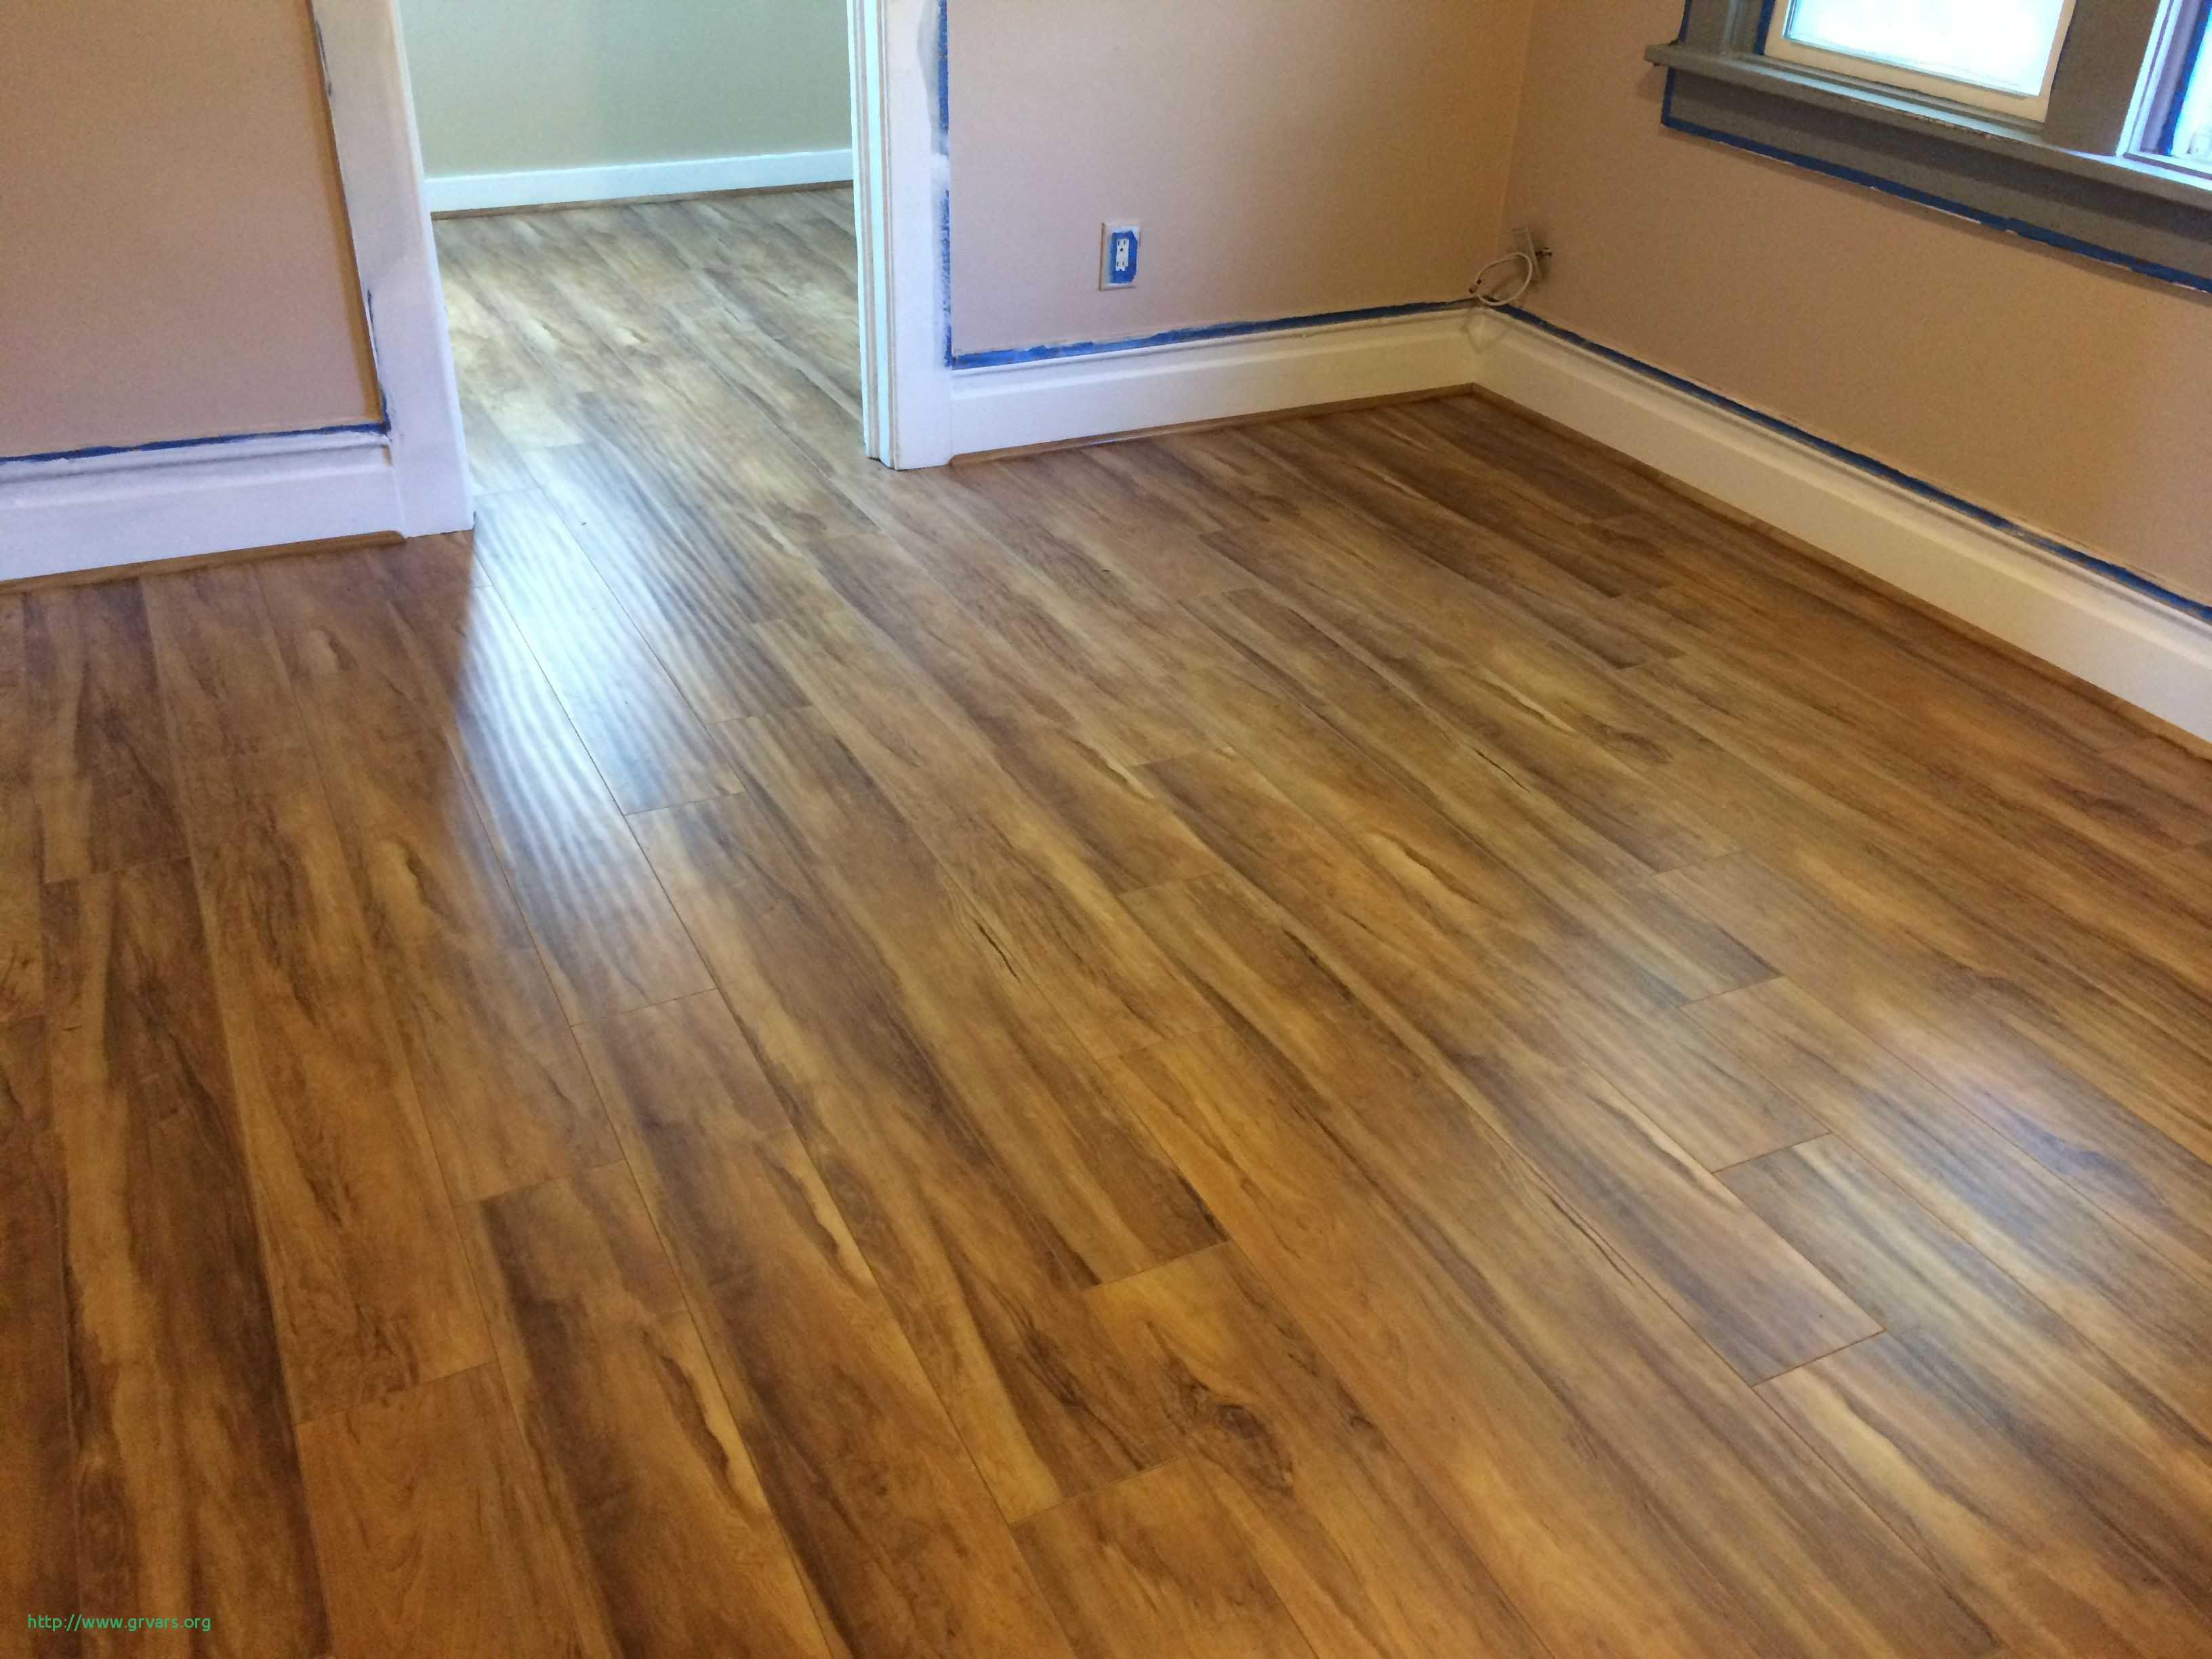 How to Install Hardwood Flooring On Concrete Subfloor Of 24 Impressionnant Can You Install Hardwood Floors On Concrete Slab within Can You Install Hardwood Floors On Concrete Slab Charmant Floating Hardwood Floor 40 How to Install